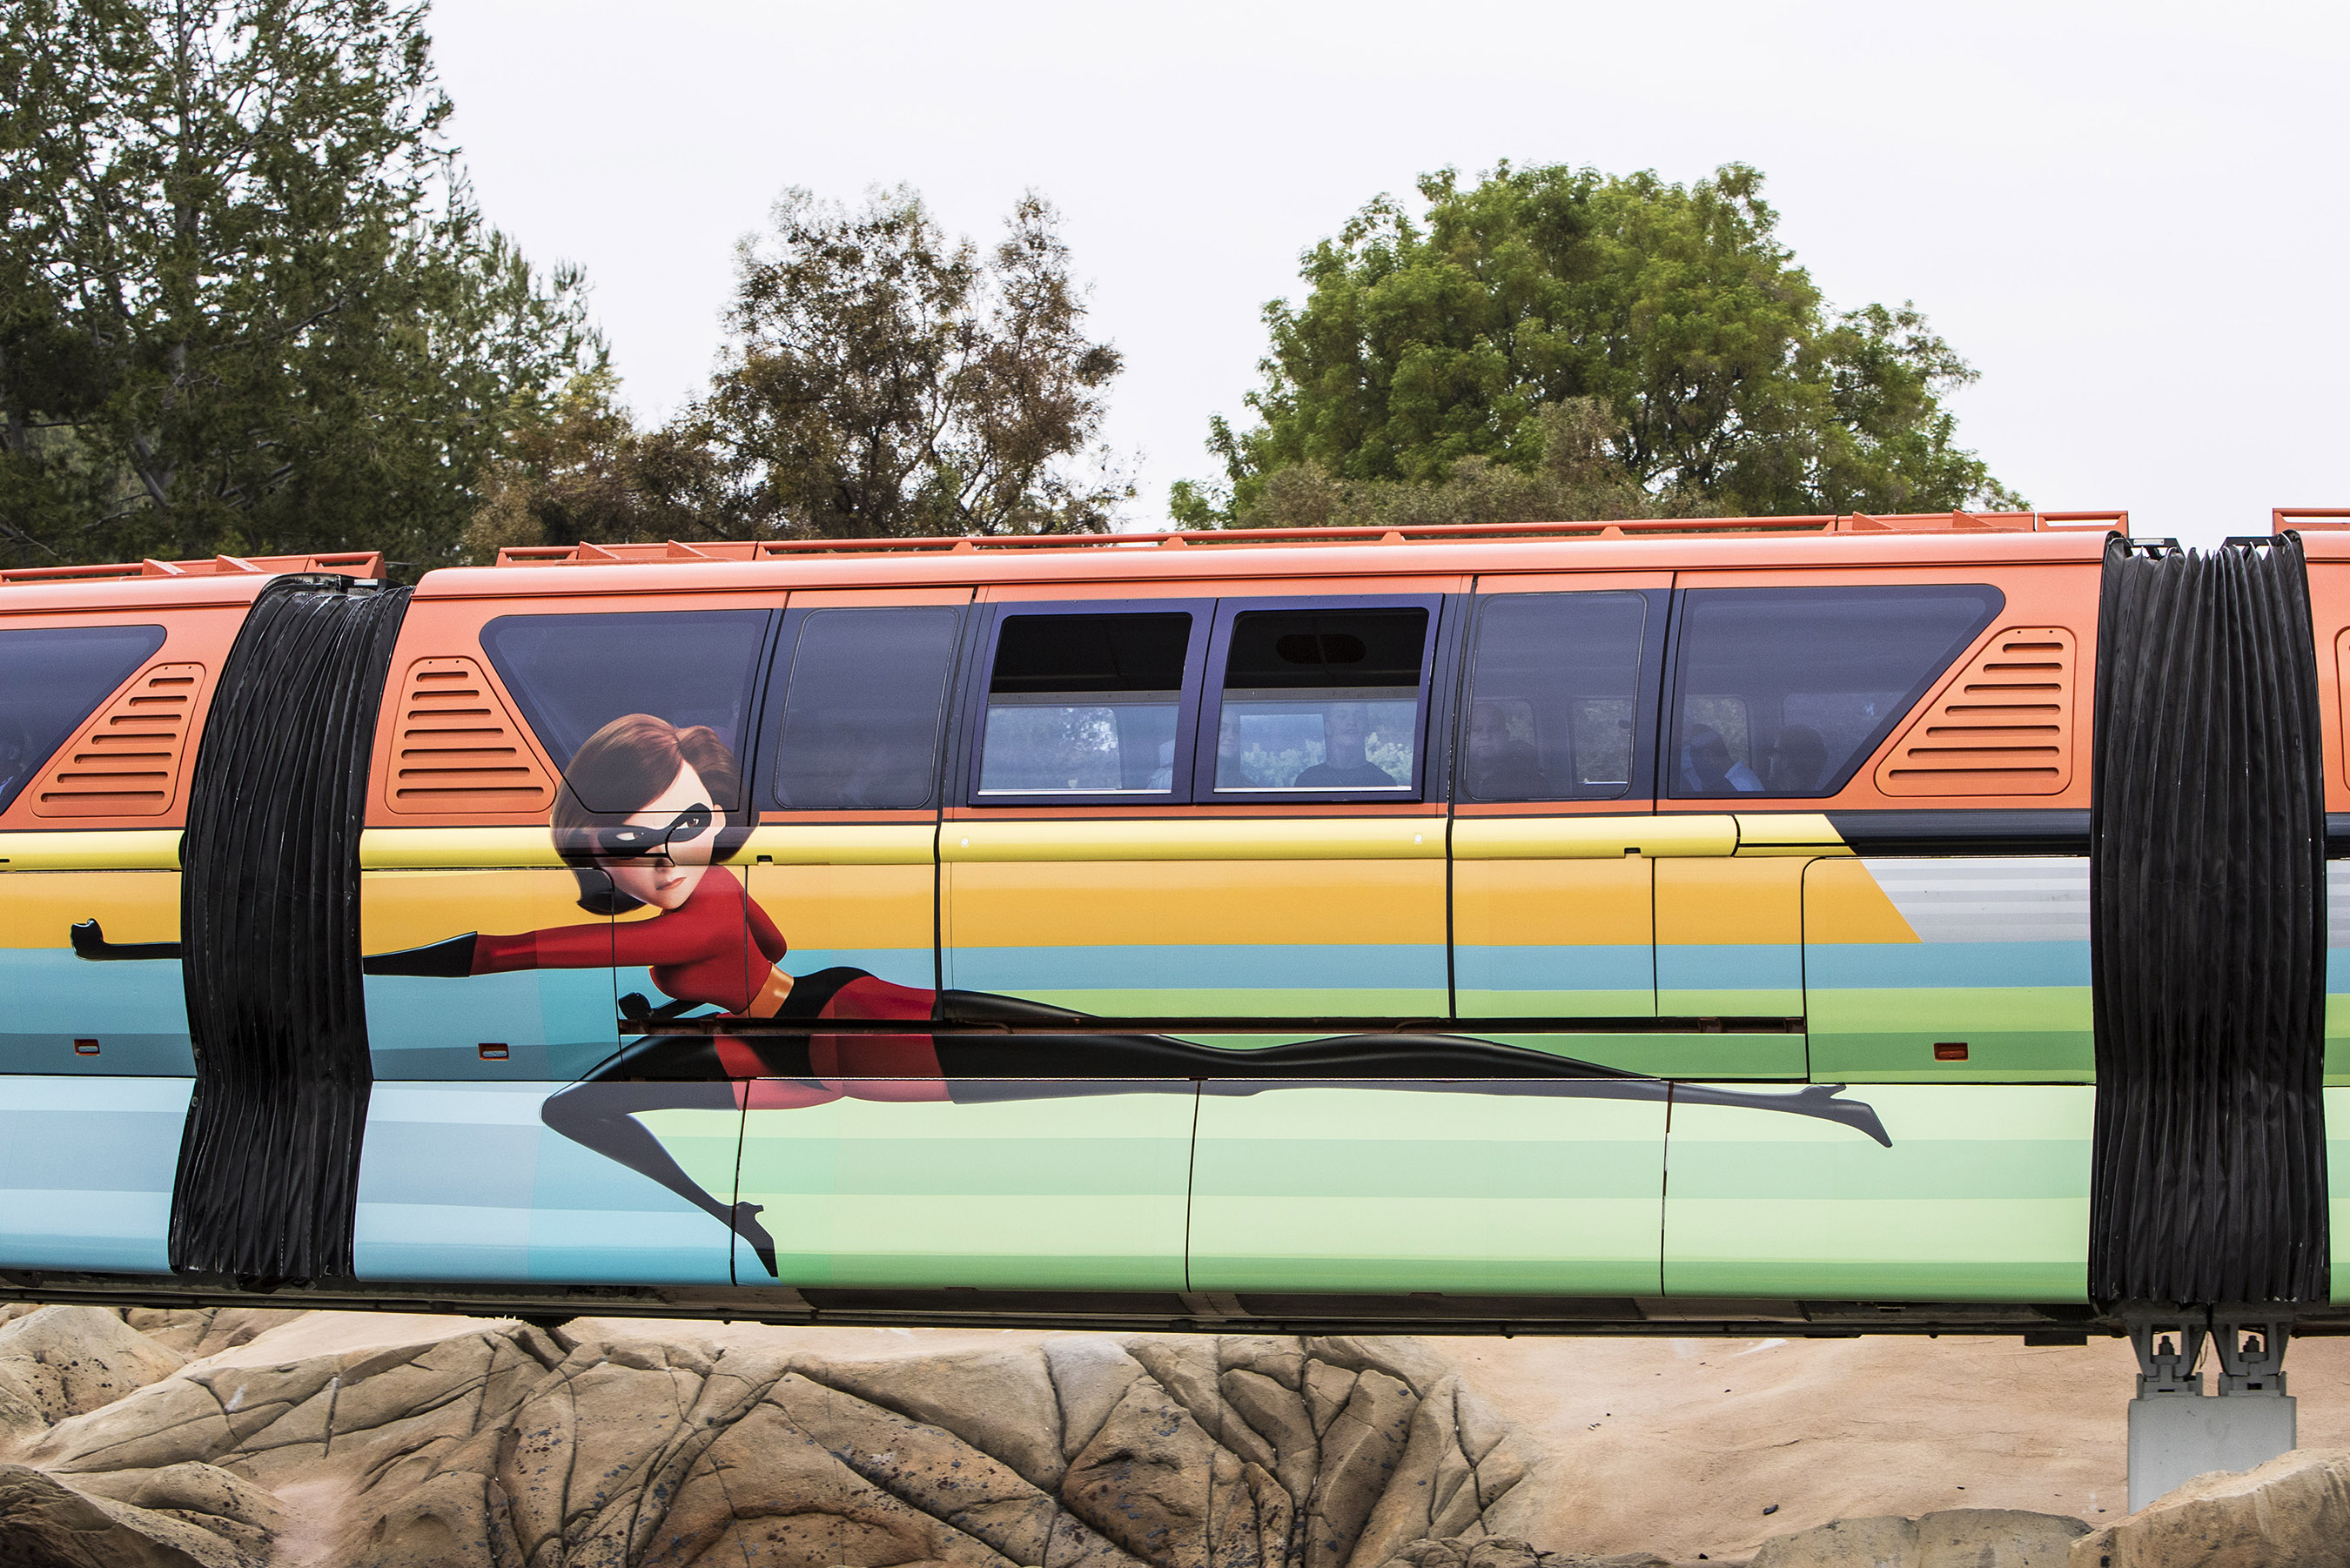 """PIXAR FEST AT THE DISNEYLAND RESORT (ANAHEIM, Calif.) - The Disneyland Monorail is zipping through the resort with a new Pixar-themed look to celebrate Pixar Fest! The orange train, inspired by Disney•Pixar's """"The Incredibles,"""" features Mr. Incredible, Mrs. Incredible, Violet, Dash and Jack-Jack on one side, while Frozone makes a cool splash on the other. Pixar Fest, the biggest Pixar celebration ever to come to Disney Parks, brings guests together to celebrate friendship and beyond at the Disneyland Resort from April 13 through Sept. 3, 2018. (Joshua Sudock/Disneyland Resort)"""